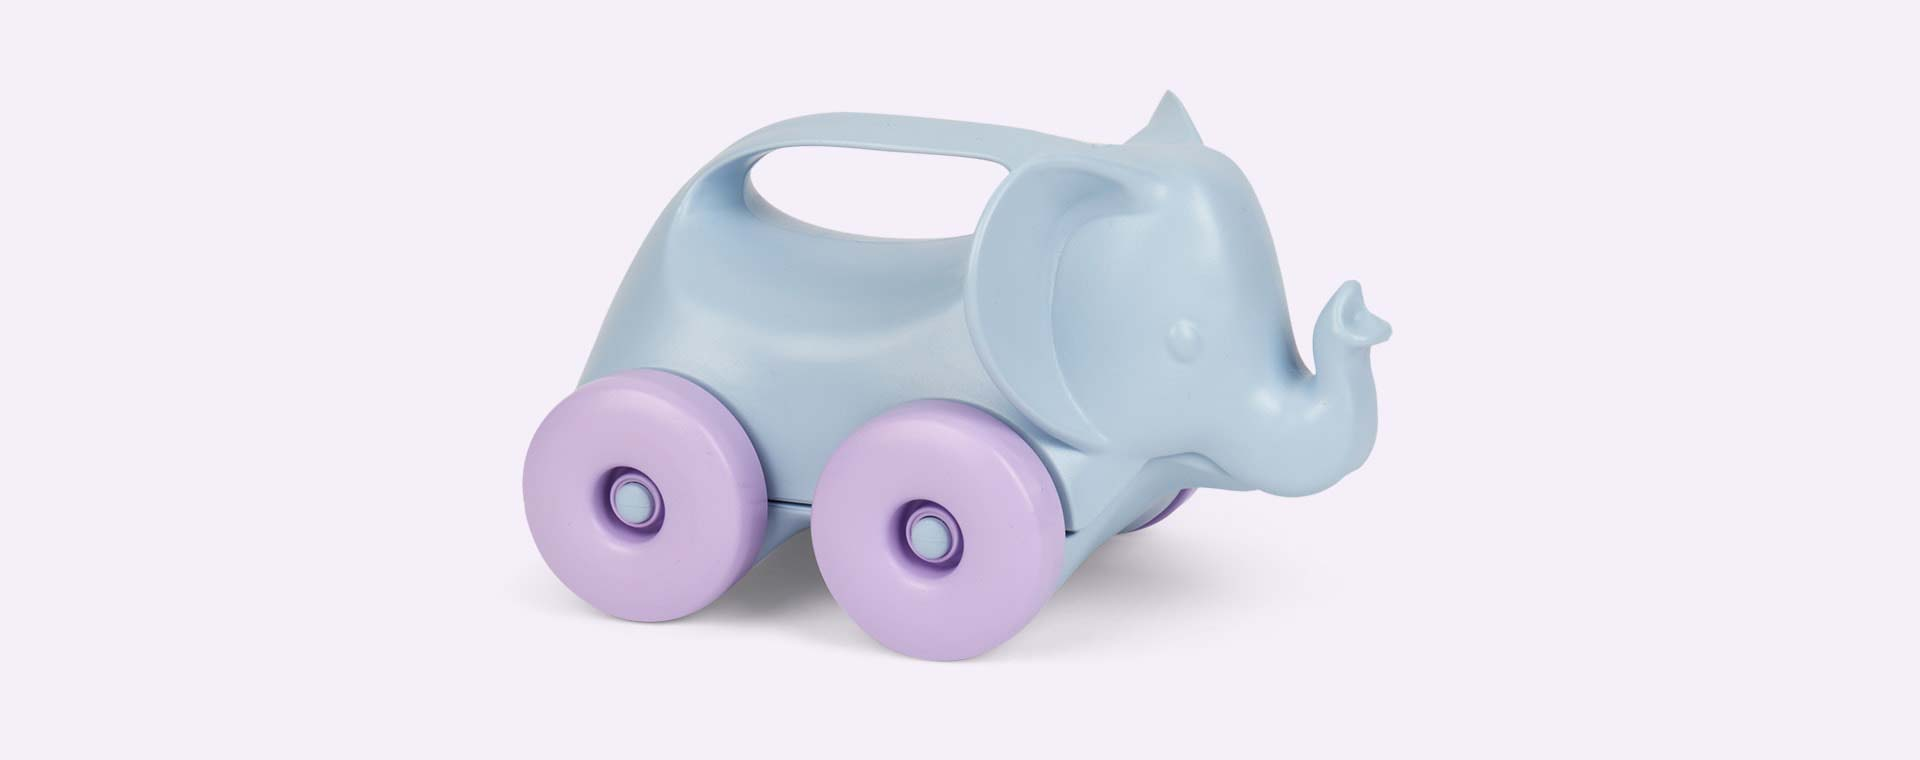 Elephant Green Toys Animals On Wheels